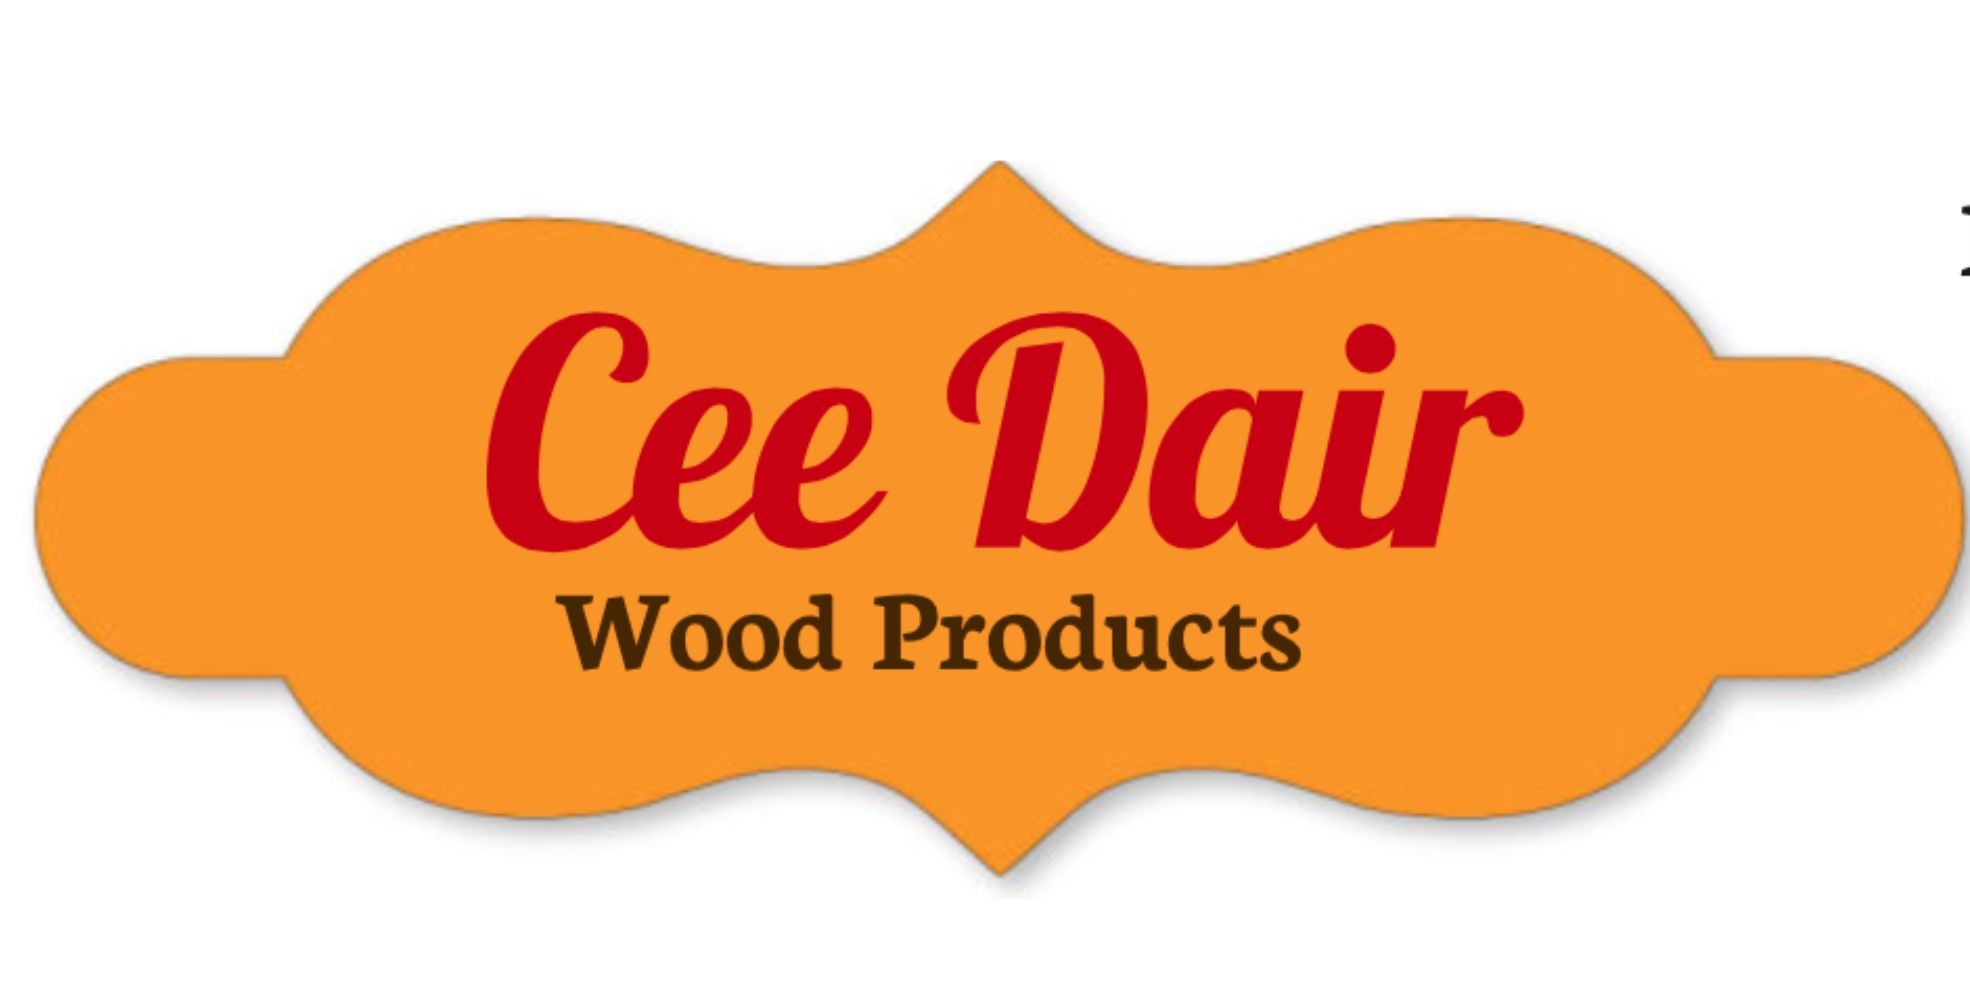 Cee Dair Wood Products